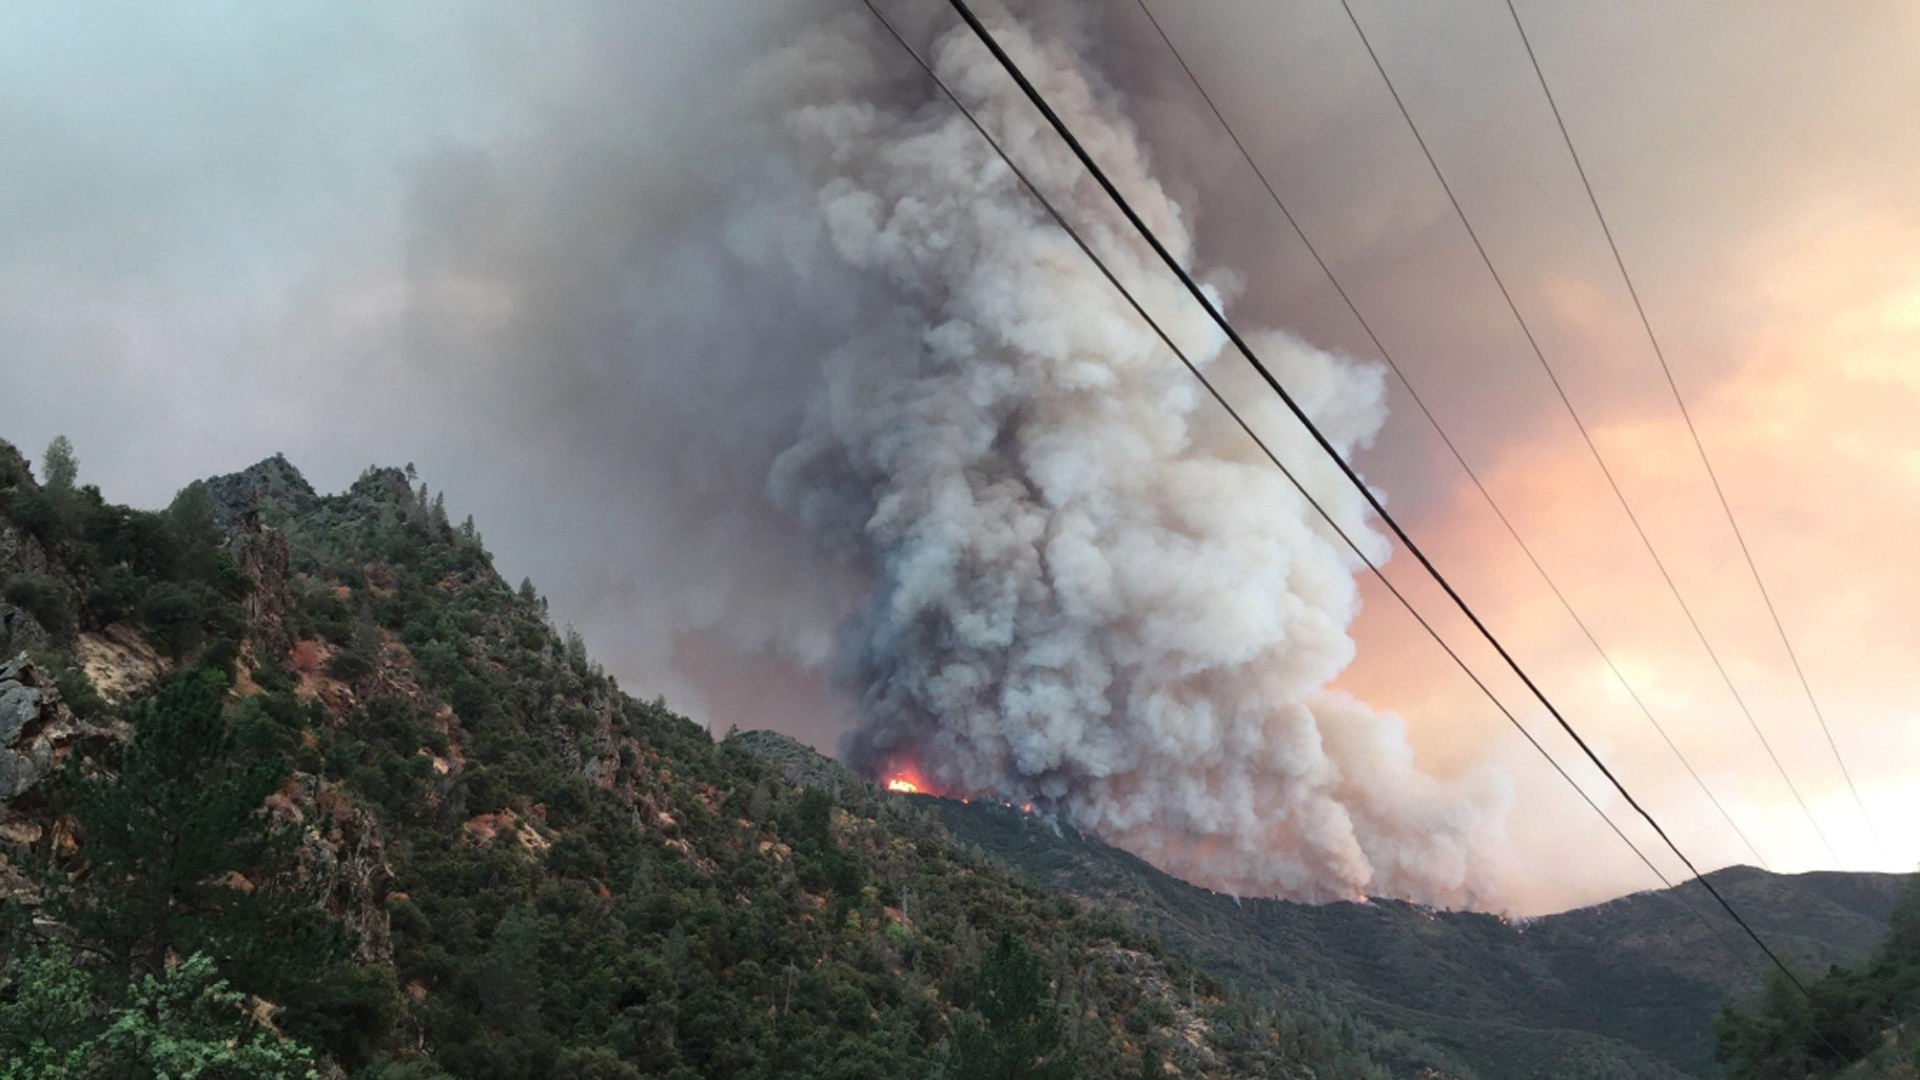 The Ferguson Fire is shown in an image tweeted by Cal Fire on July 16, 2018. (Credit: Cal Fire via Sierra National Forest)